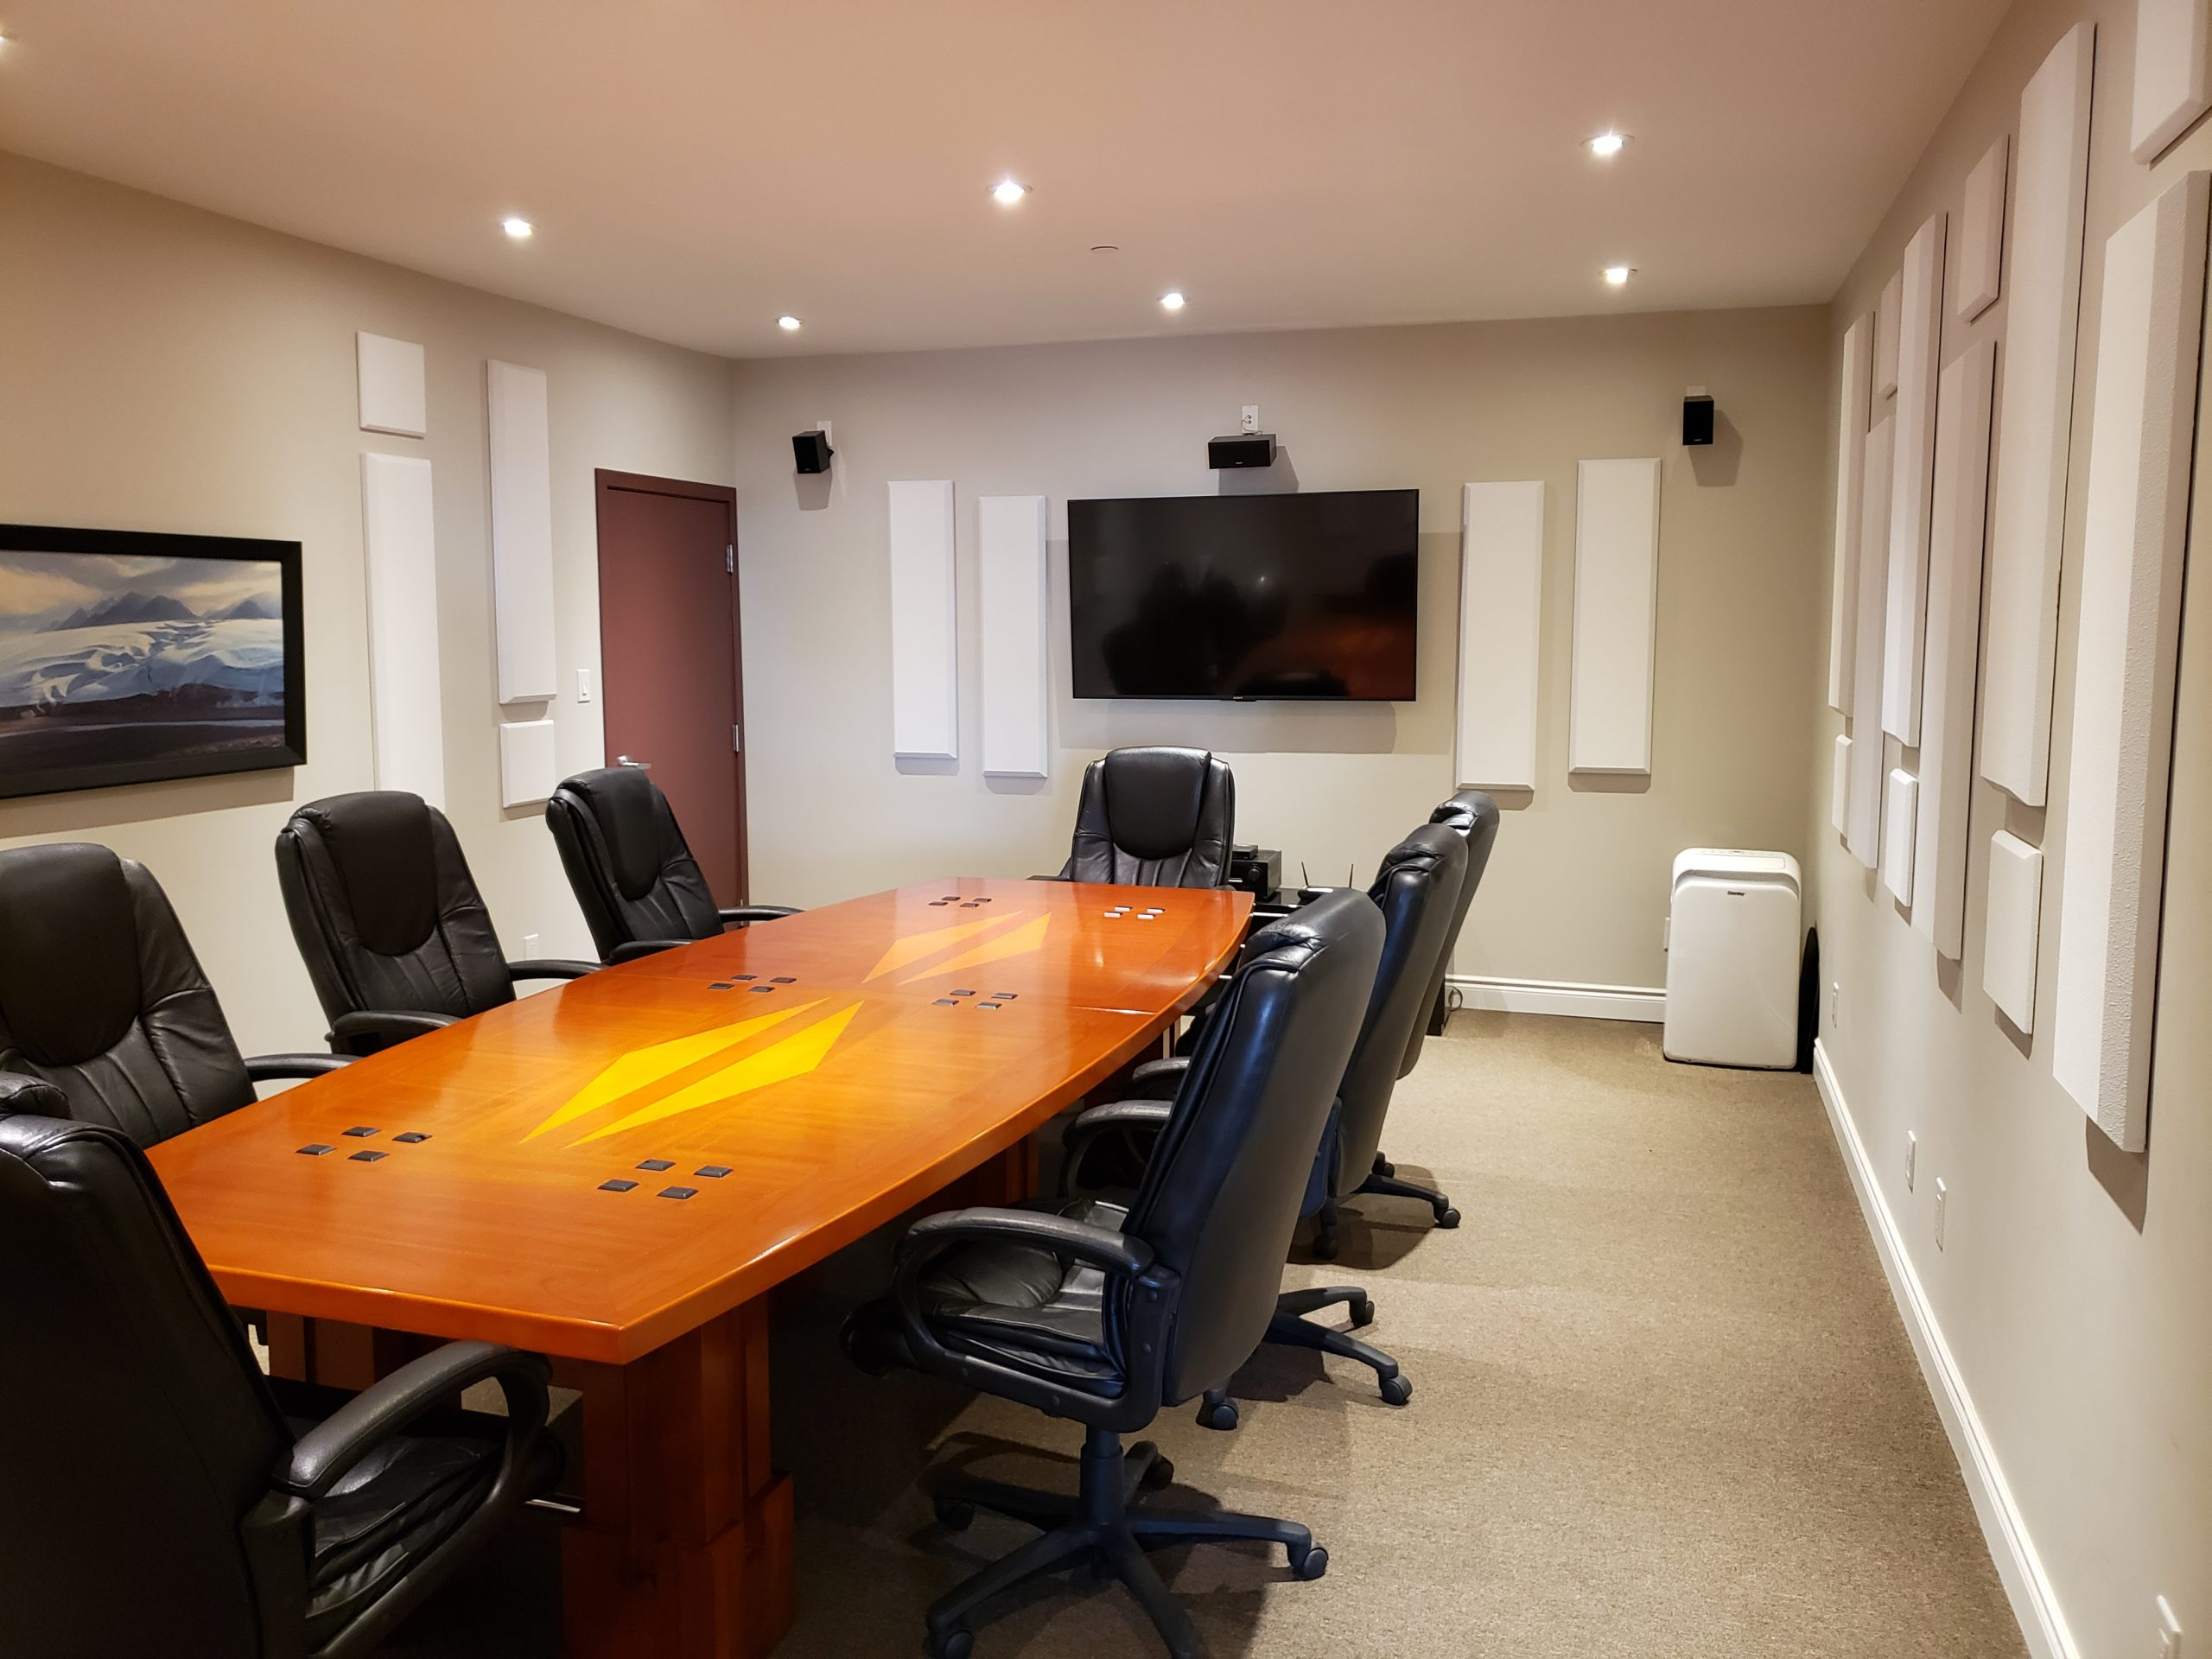 Board room equipped with thick sound panels